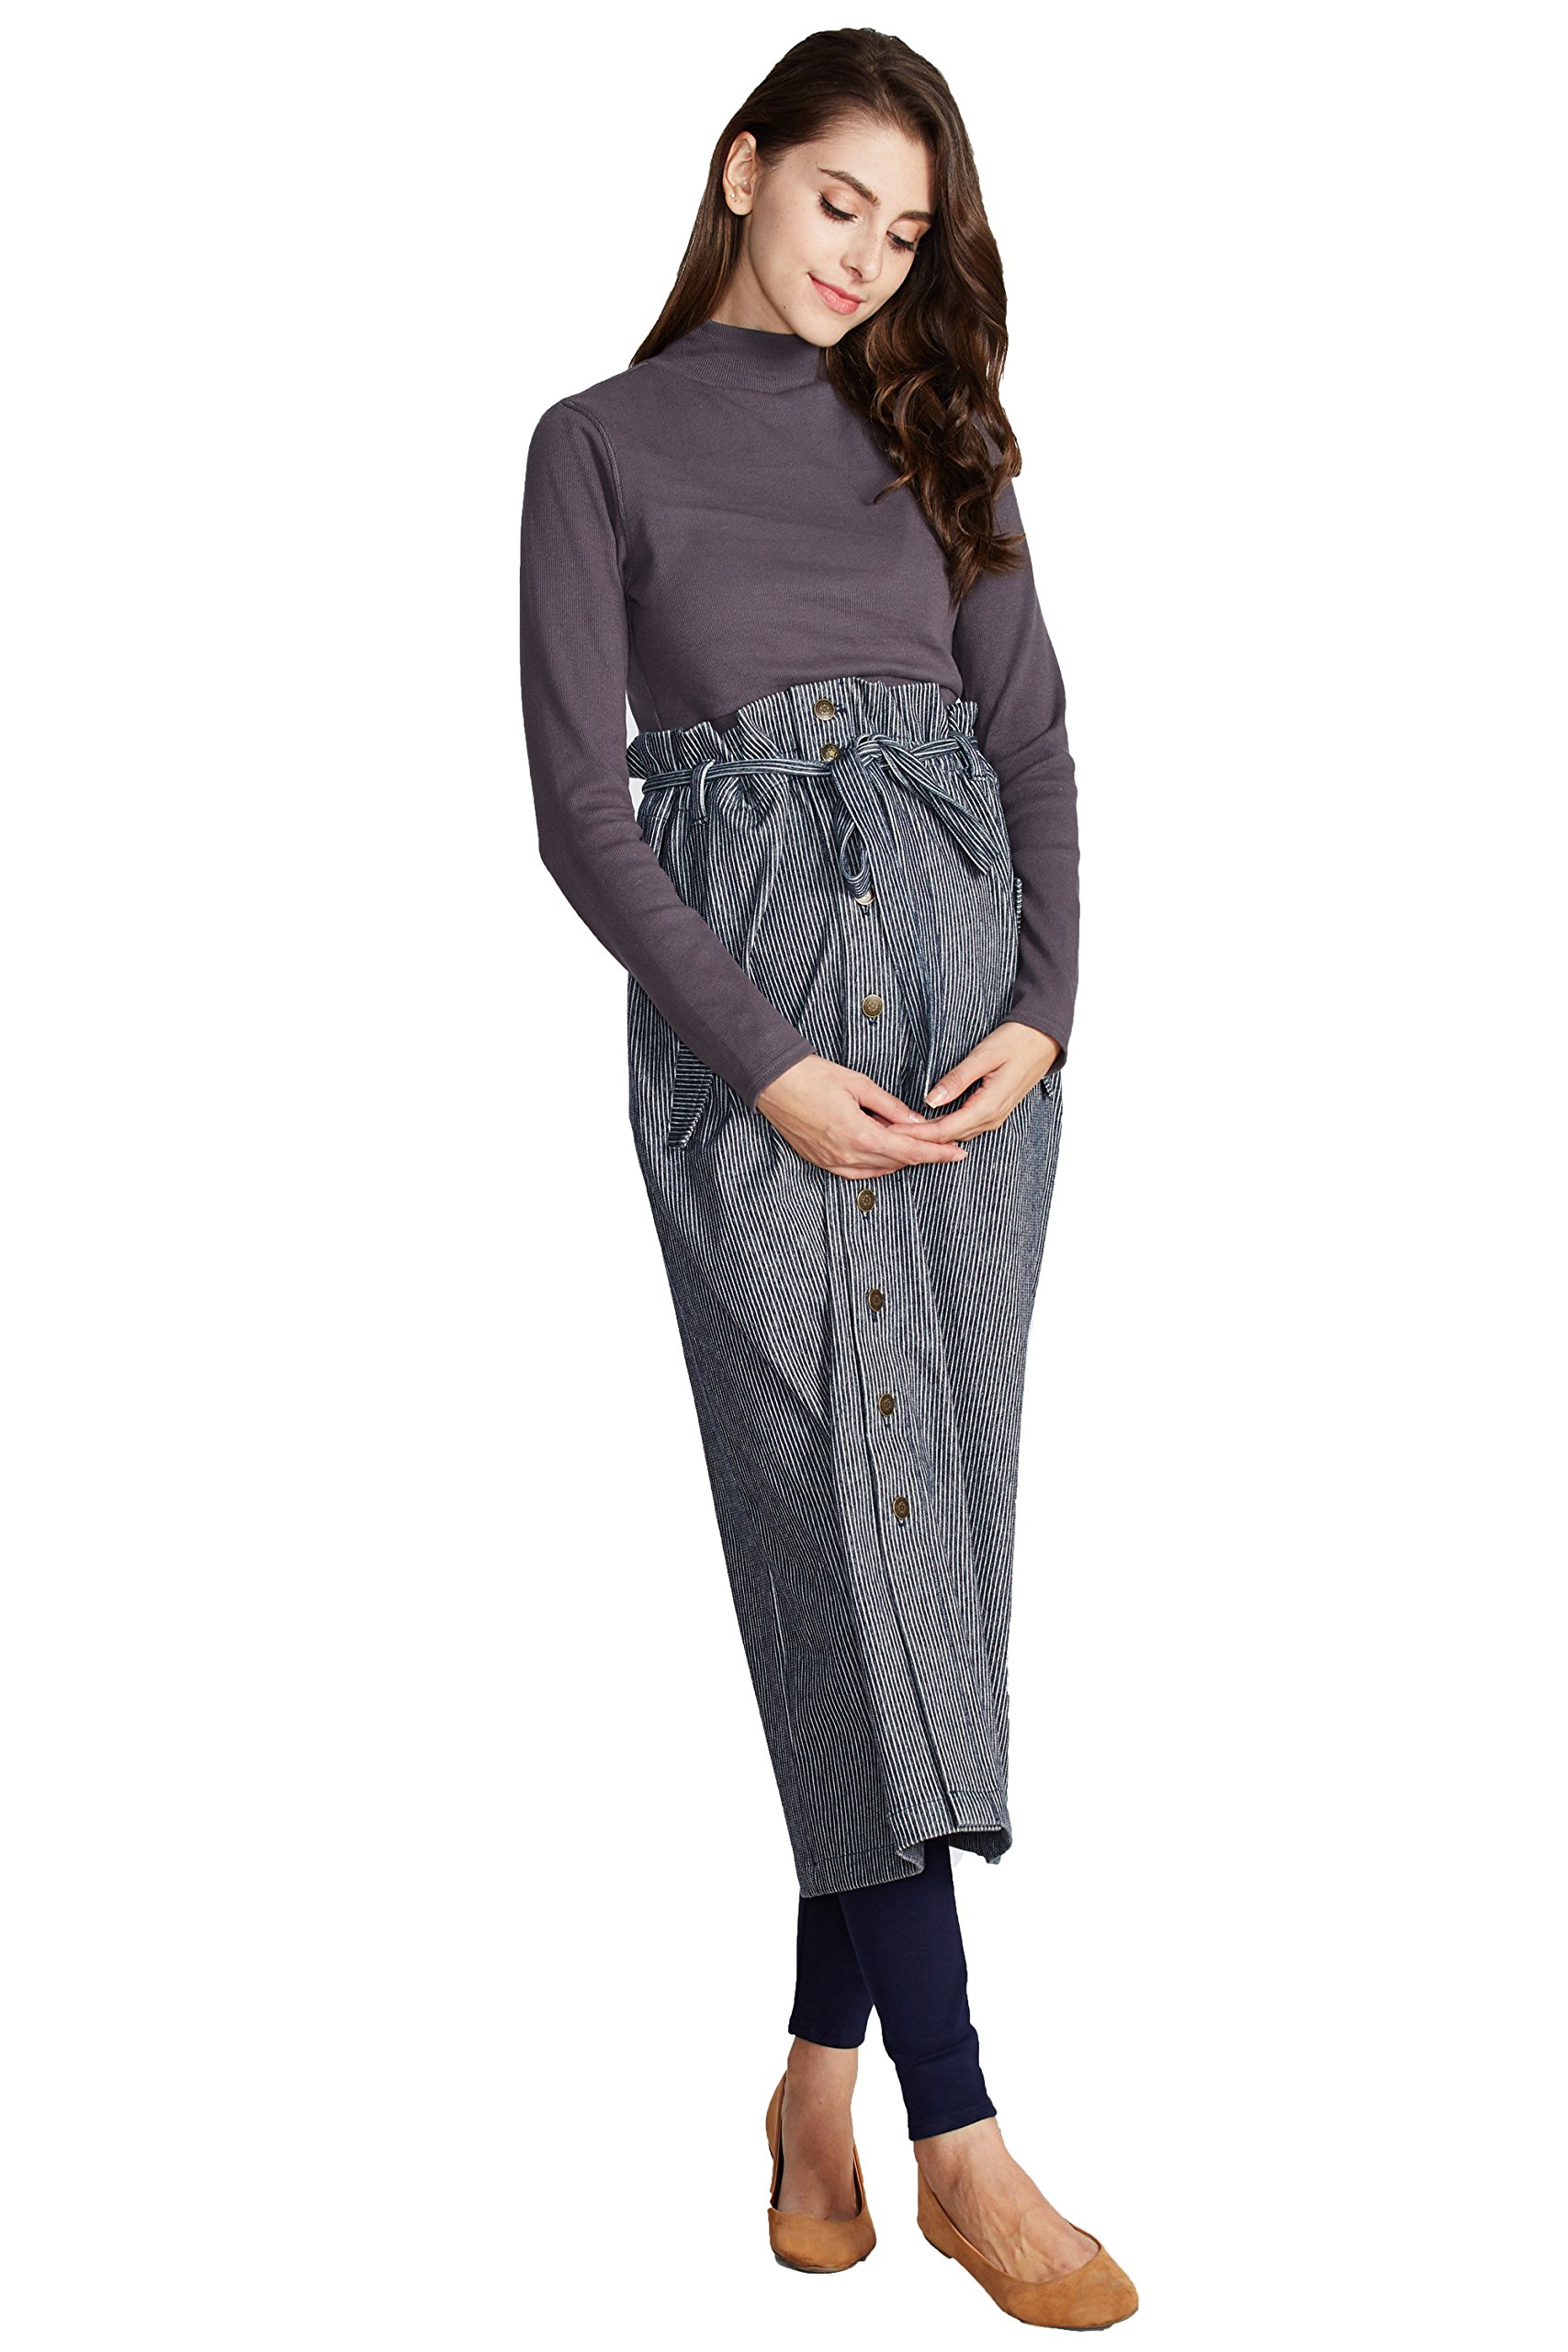 Sweet Mommy Maternity Maxi Jeans Skirt With Suspenders Straps (F, Blue Stripe)